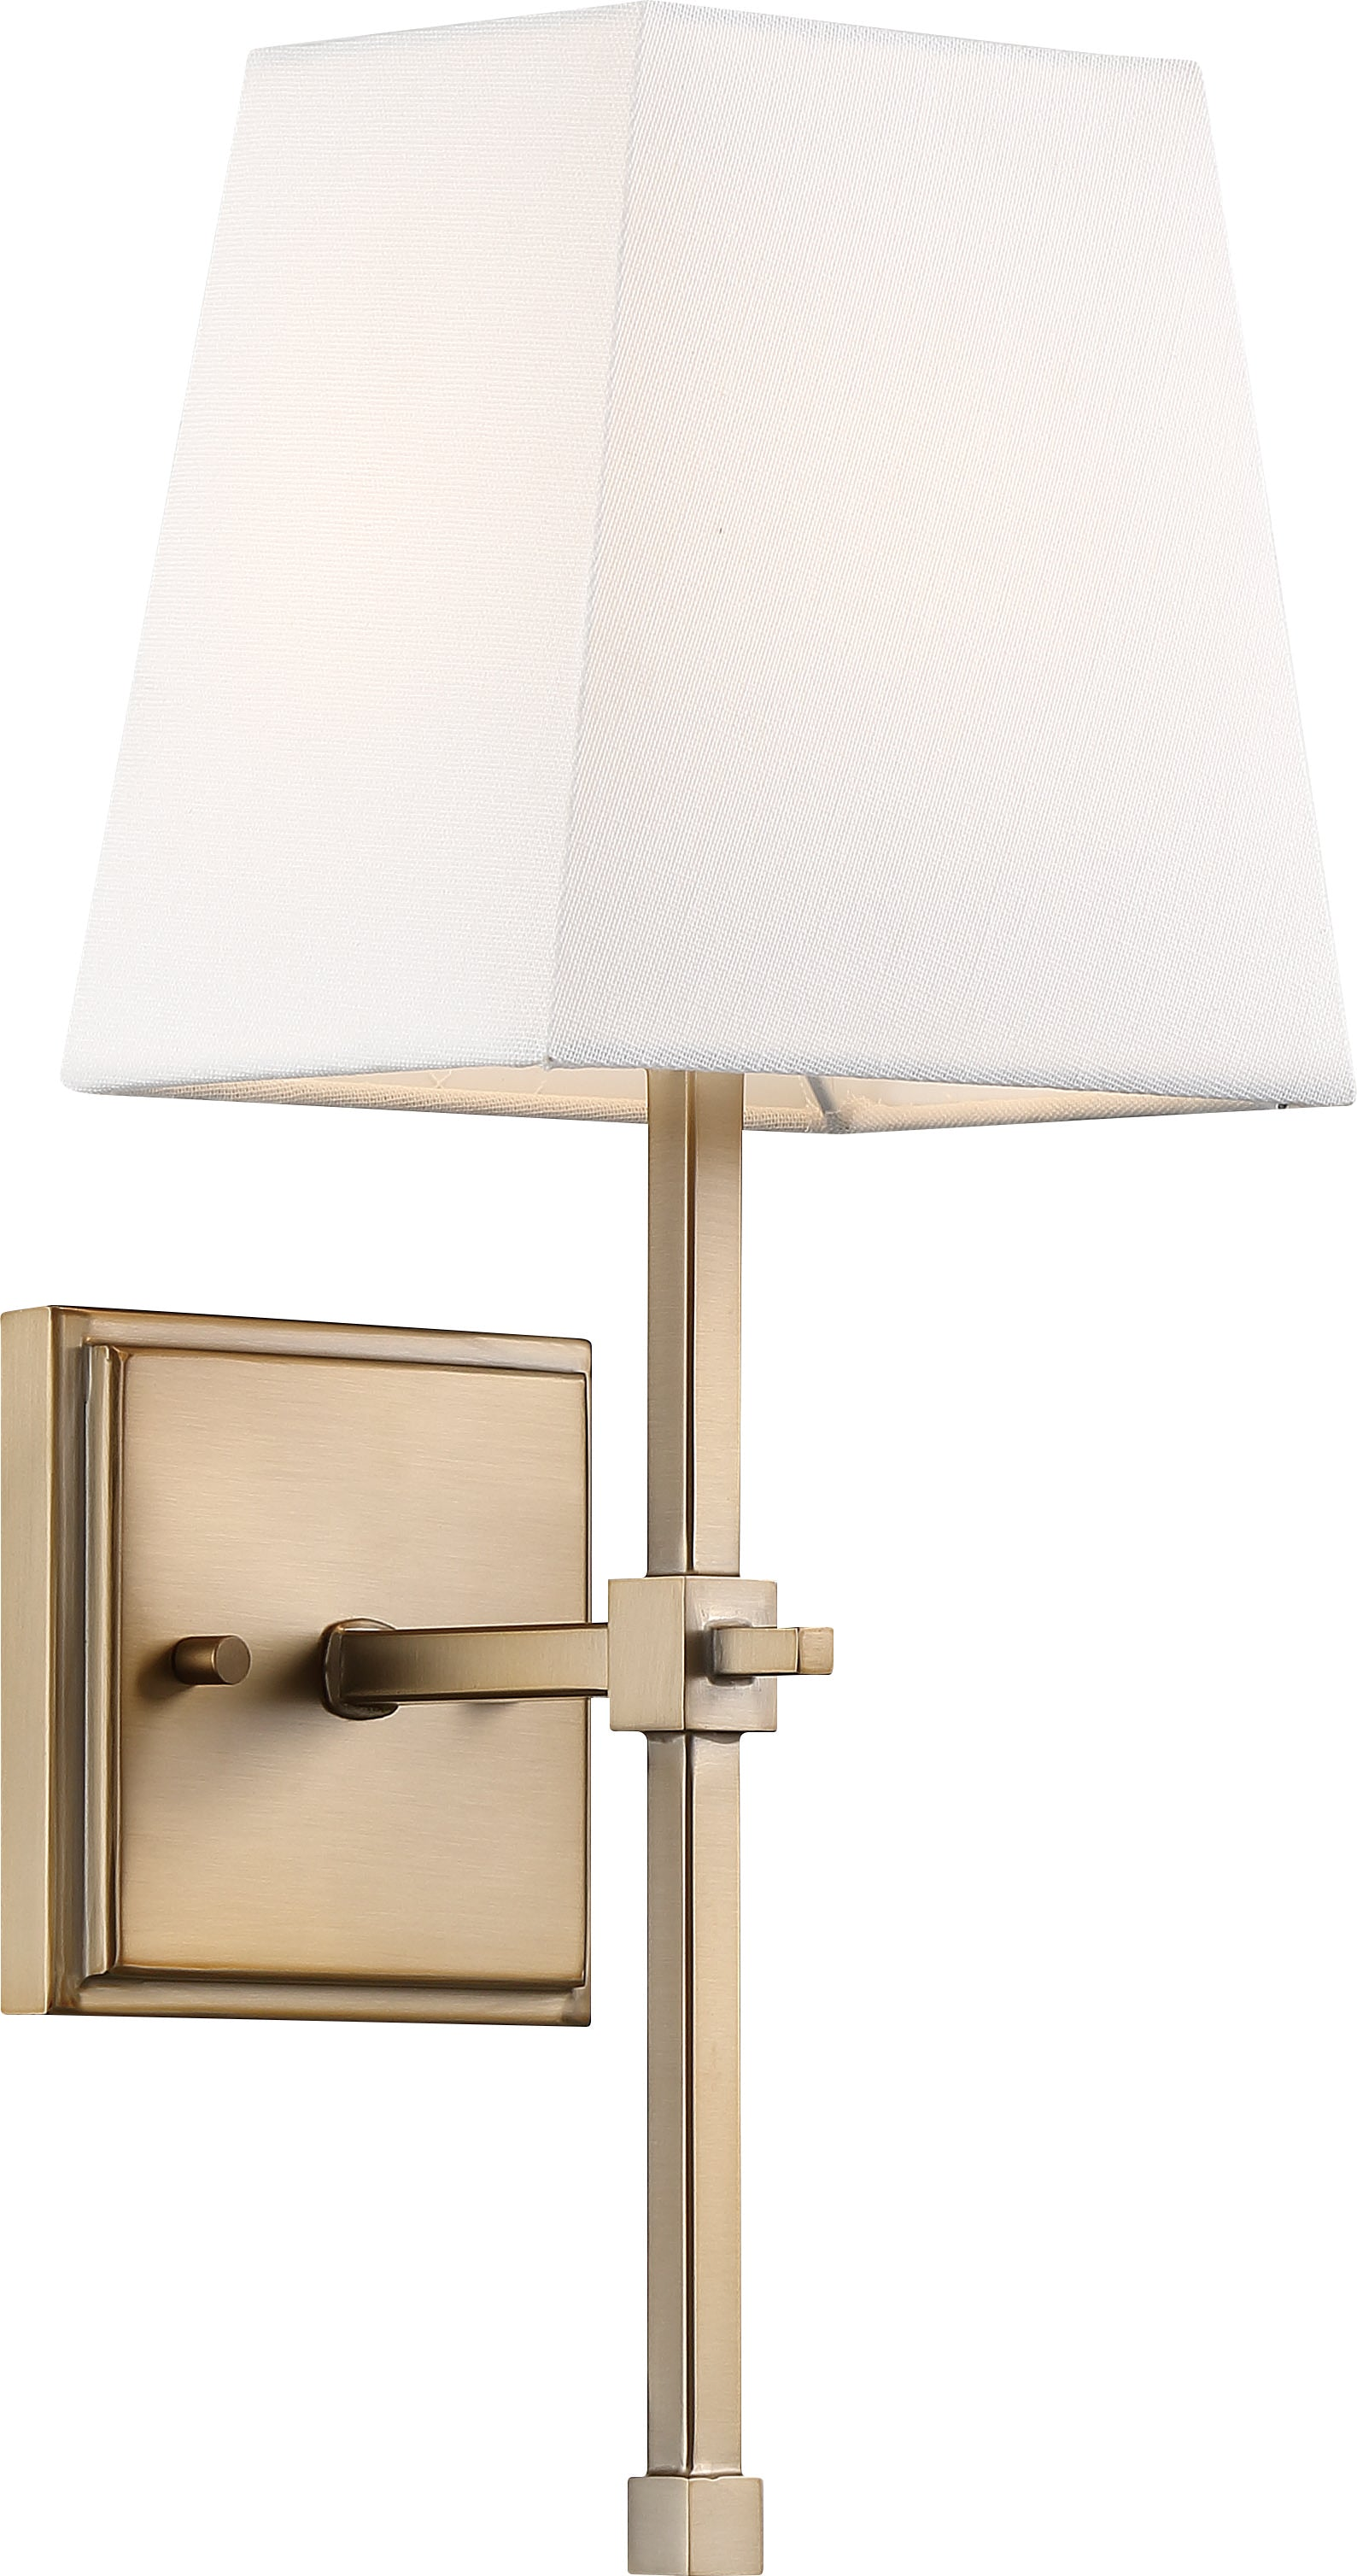 Nuvo 60w Type B Highline Wall 1-Light 120v Burnished Brass & White Shade